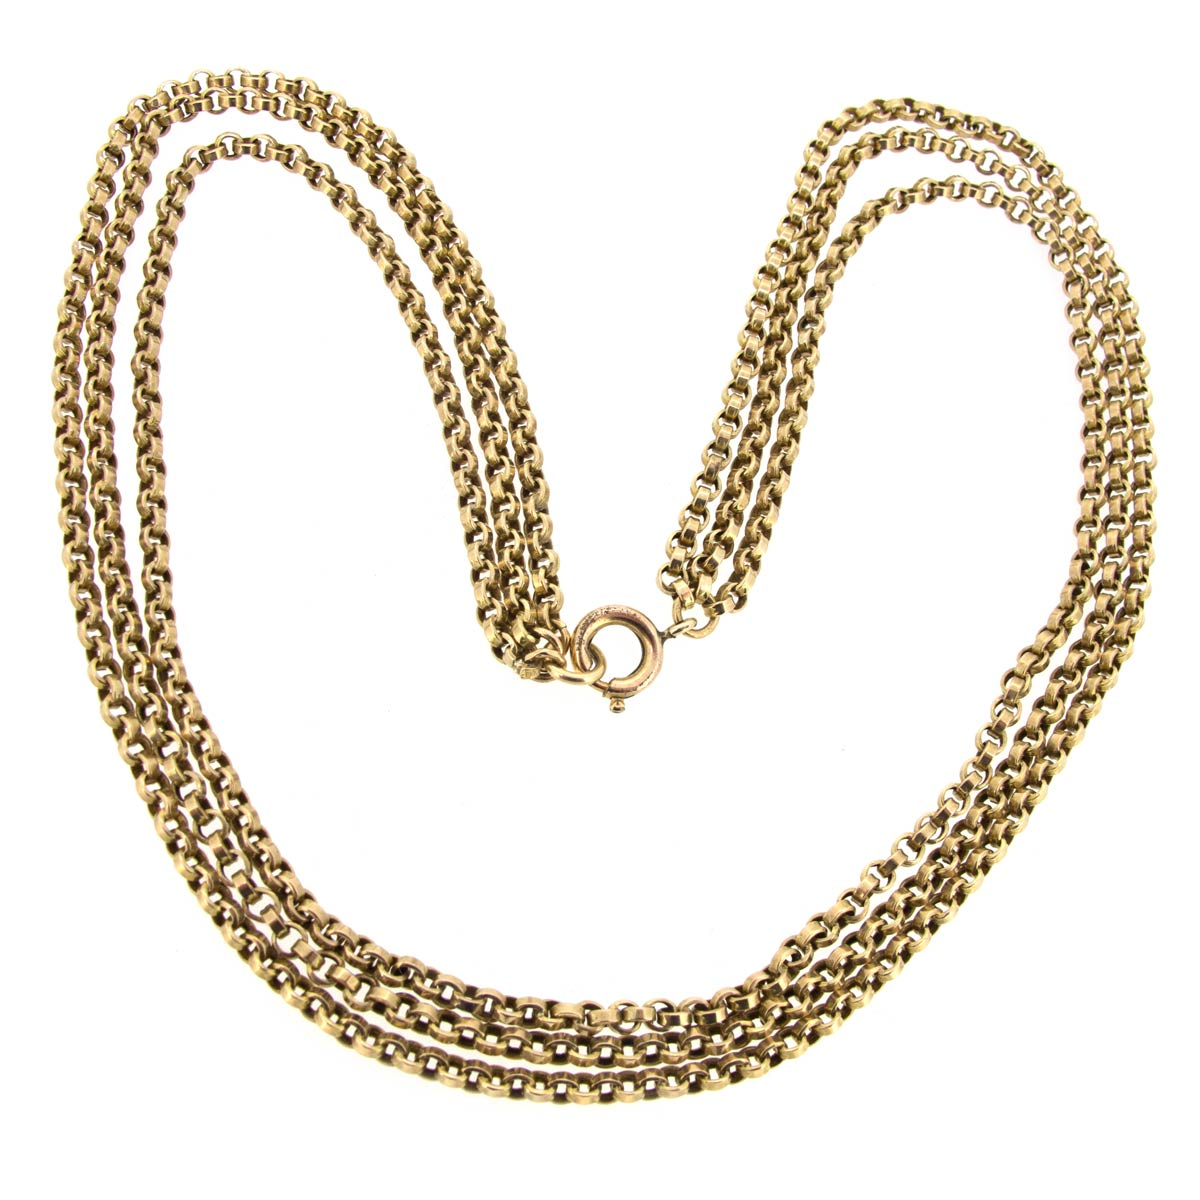 Triple Row Gold Necklace